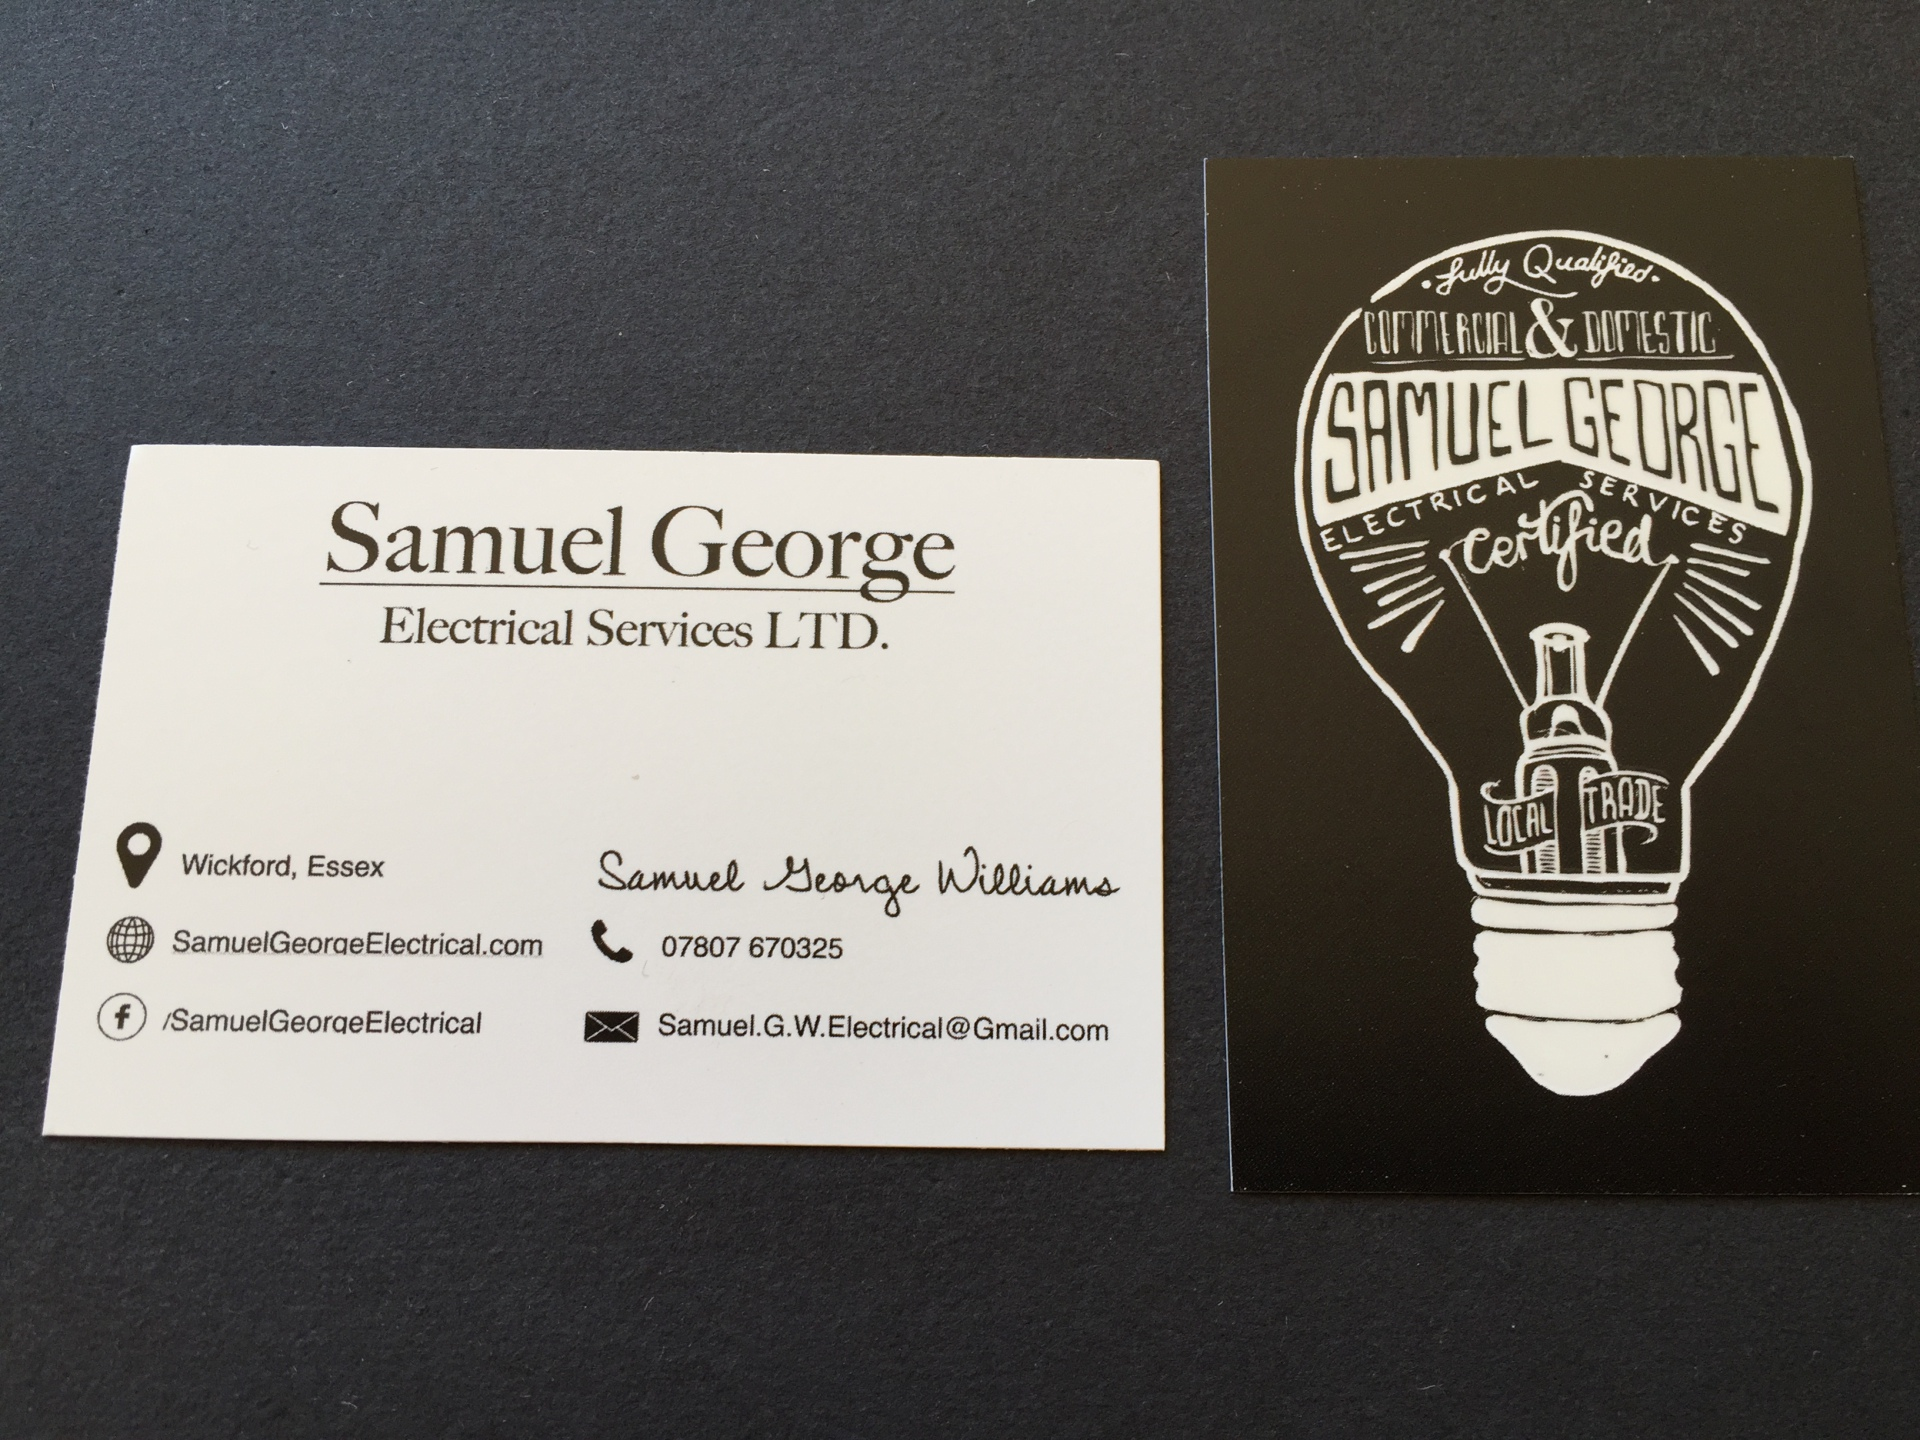 Our Business cards